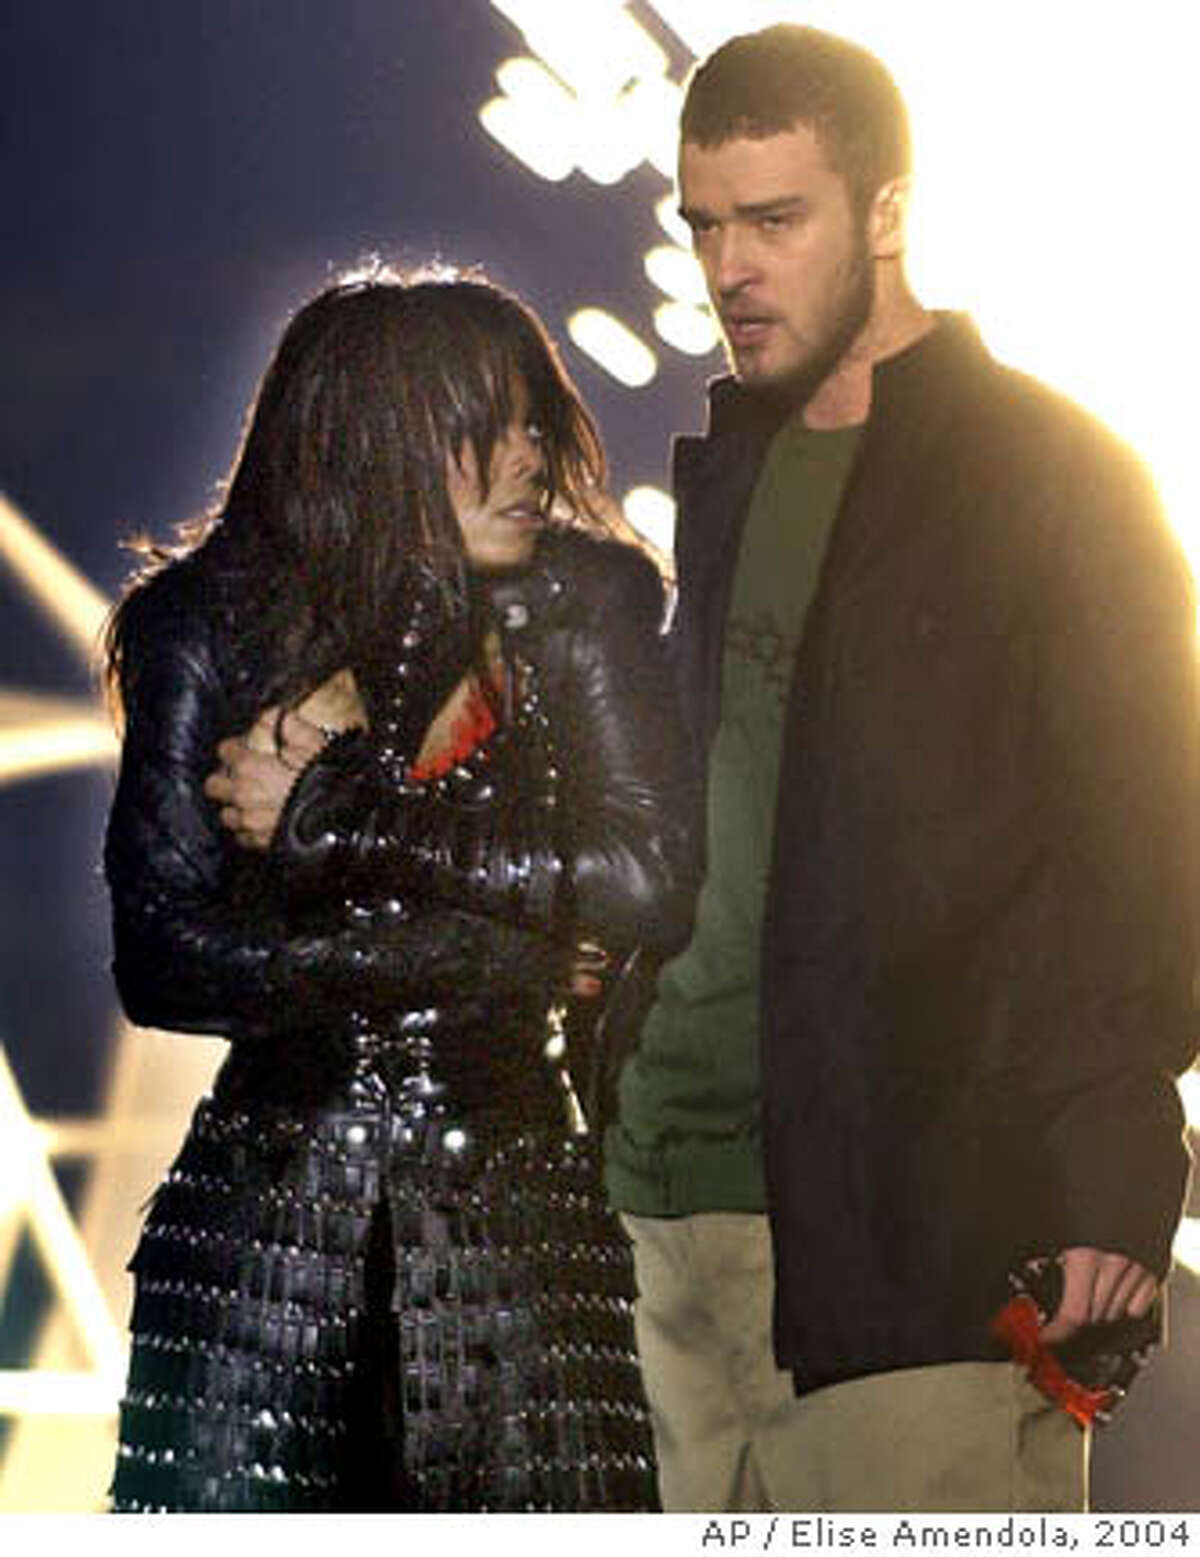 Singer Janet Jackson, left, covers her breast after her outfit came undone during a number with Justin Timberlake during the halftime show of Super Bowl XXXVIII in Houston, Sunday, Feb. 1, 2004. (AP Photo/Elise Amendola) ALSO RAN: 2/3/2004, 09-12-2004 Undone: Janet Jackson and Justin Timberlake are apologizing for what they insist was an accidental exposure of her breast during the halftime show. Taboo Tunes by Peter Blecha, below: false alarms? Taboo Tunes by Peter Blecha, below: false alarms? Ran on: 02-04-2007 TiVos technology found a spike in audience reaction when Justin Timberlake exposed Janet Jacksons breast at a halftime show.